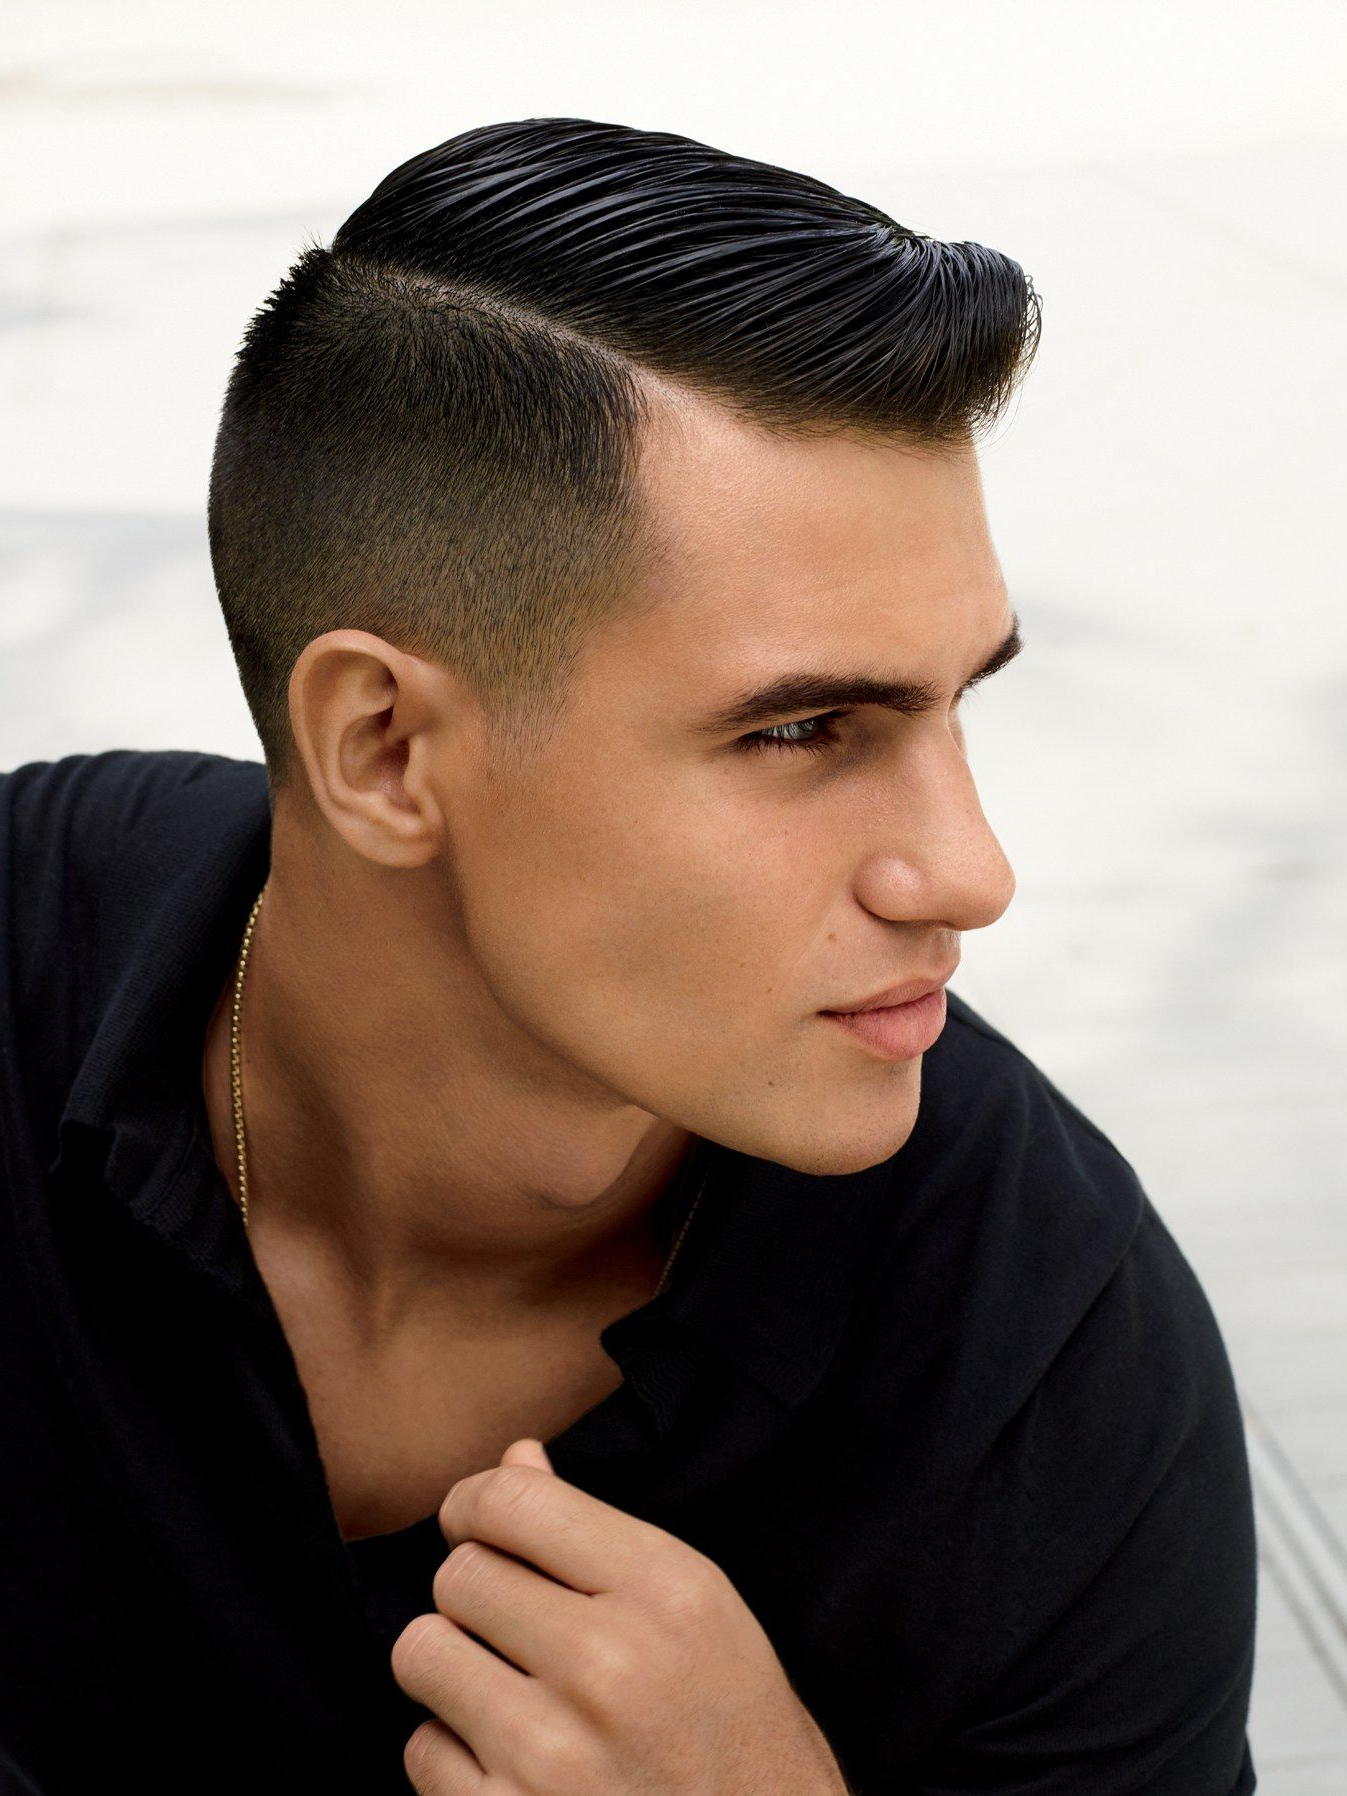 The Best Short Haircut For Men This Summer | Hairstyles | Pinterest Pertaining To Summer Short Haircuts (View 19 of 25)